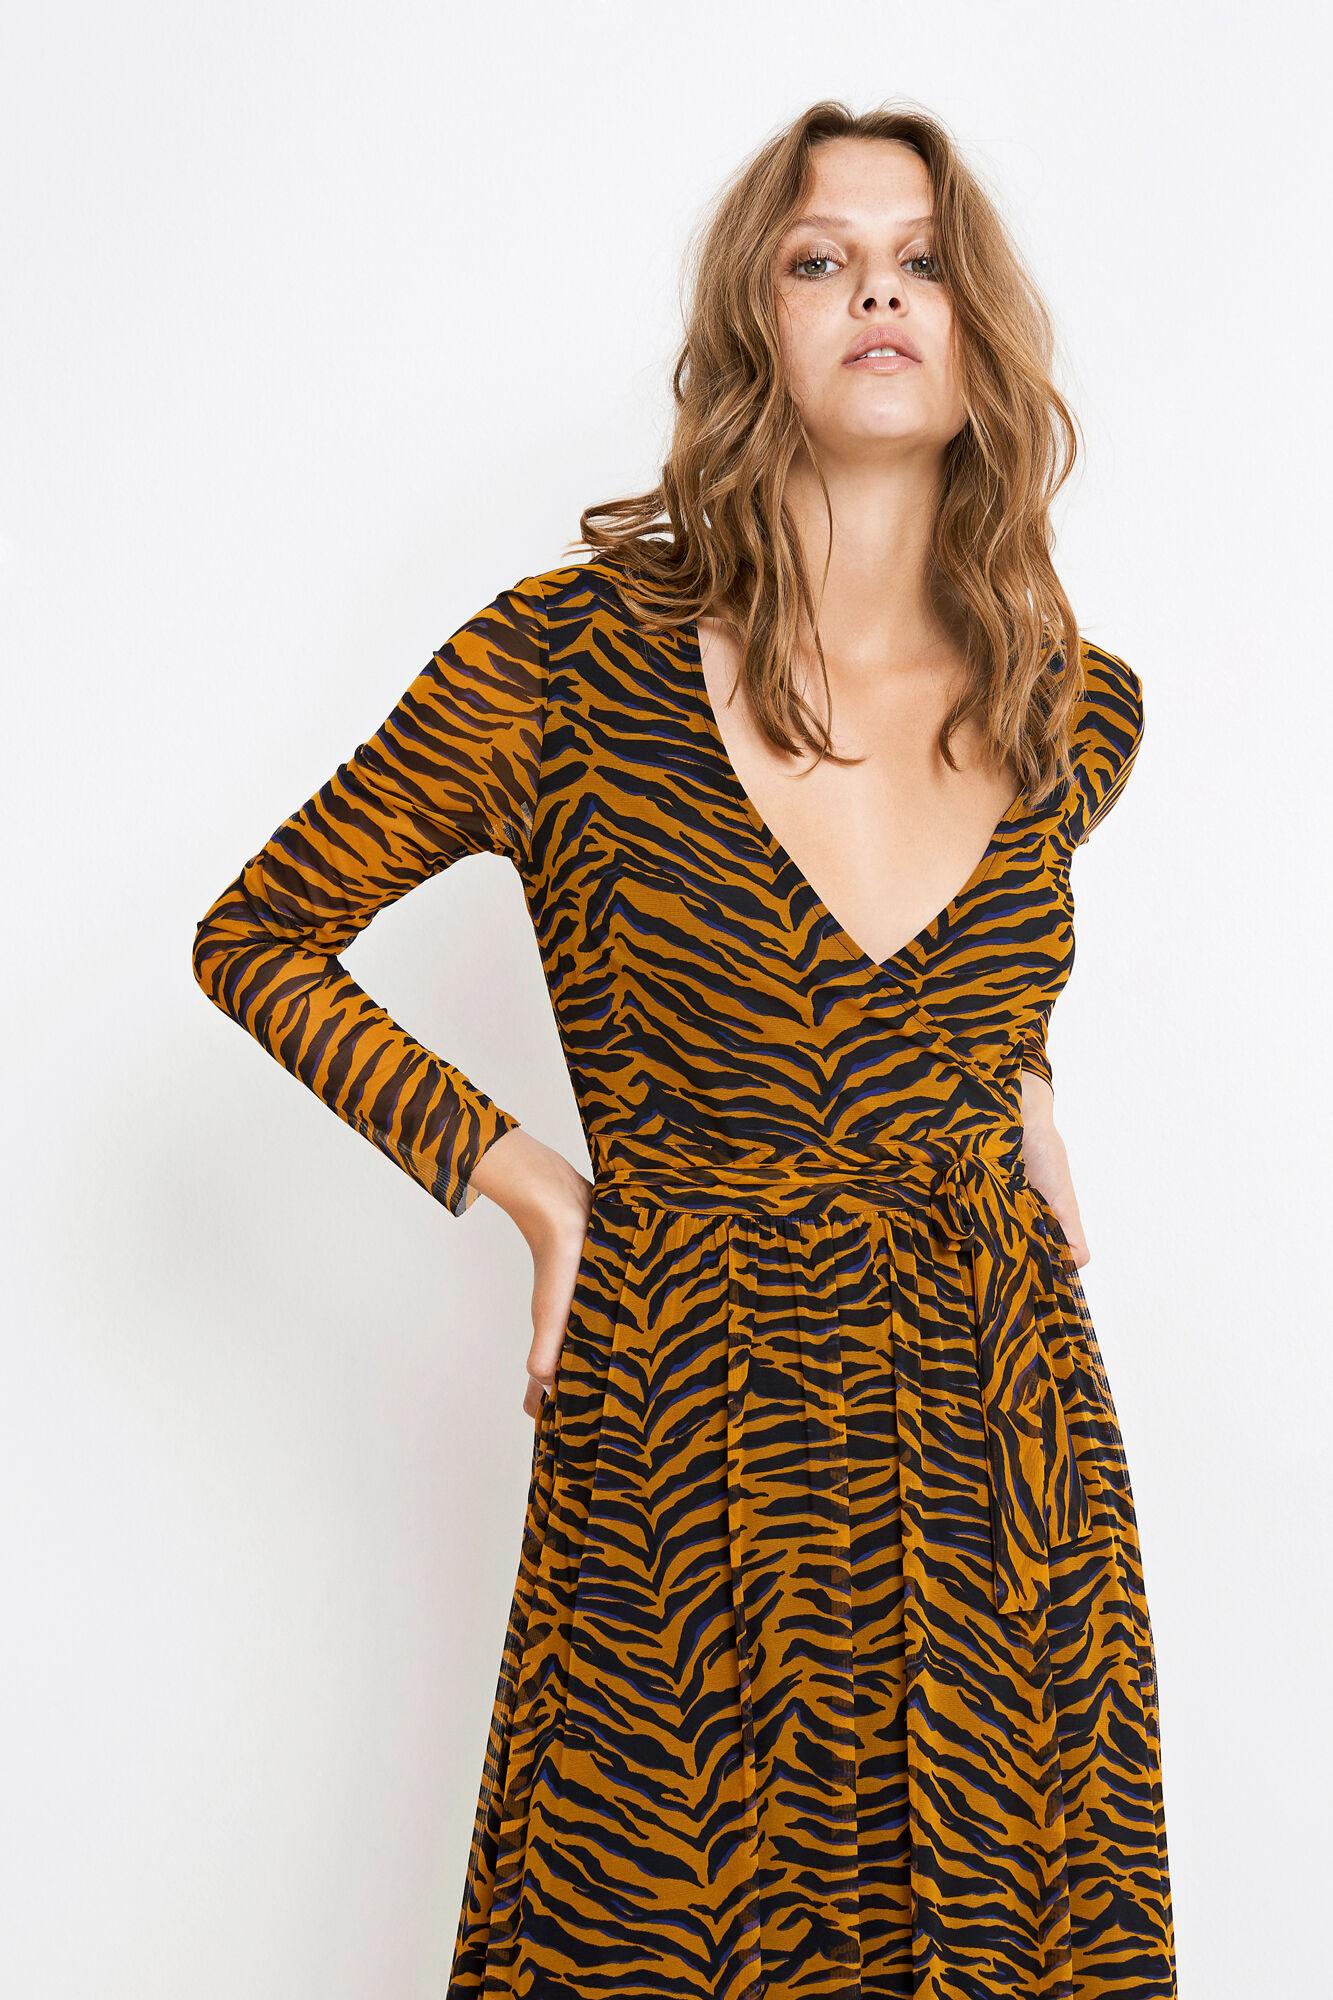 ENELK LS DRESS AOP 5954, SUDAN BROWN TIGER AOP